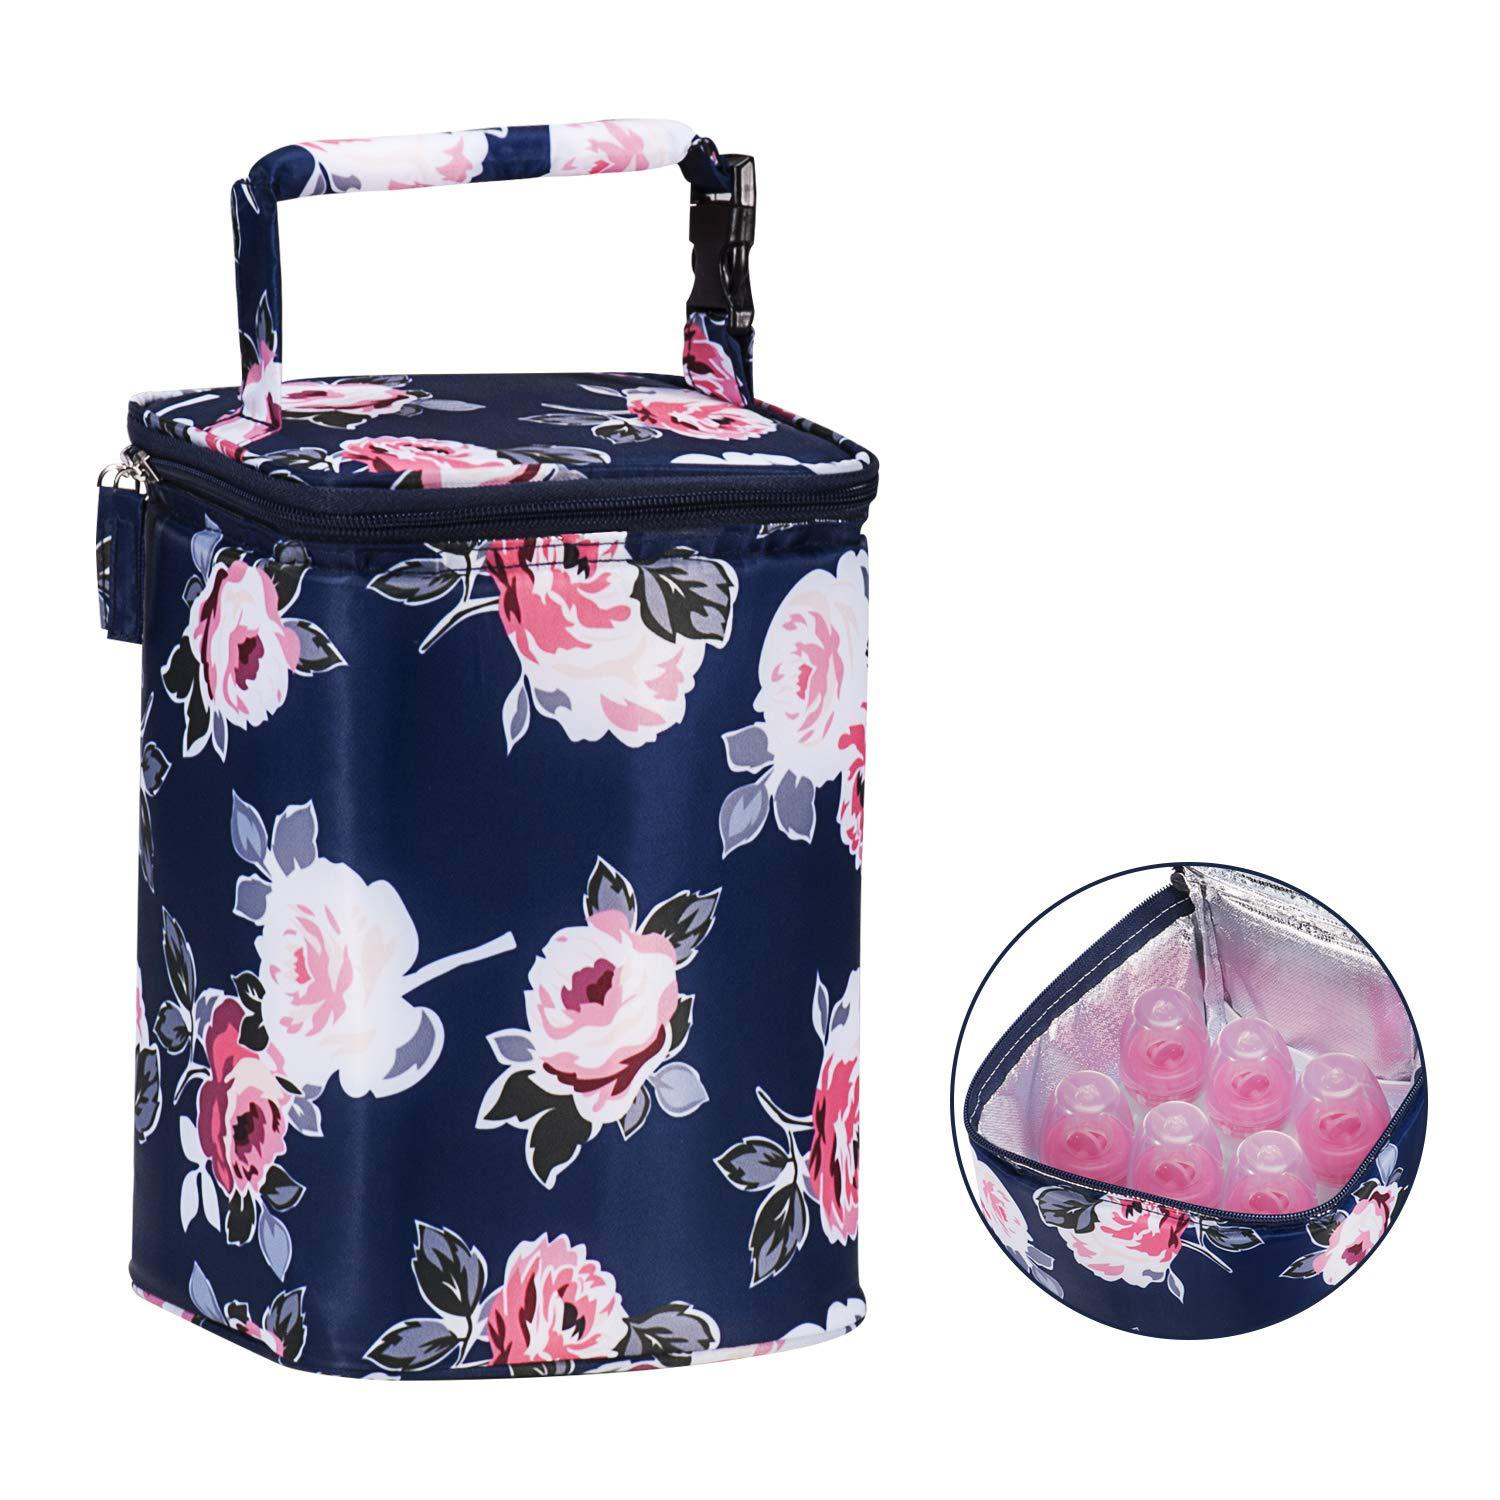 Hot Selling Baby Children Lunch Bag Baby Bag Lunch Bag Portable Insulated Bag Feeding Bottle Storage Bag